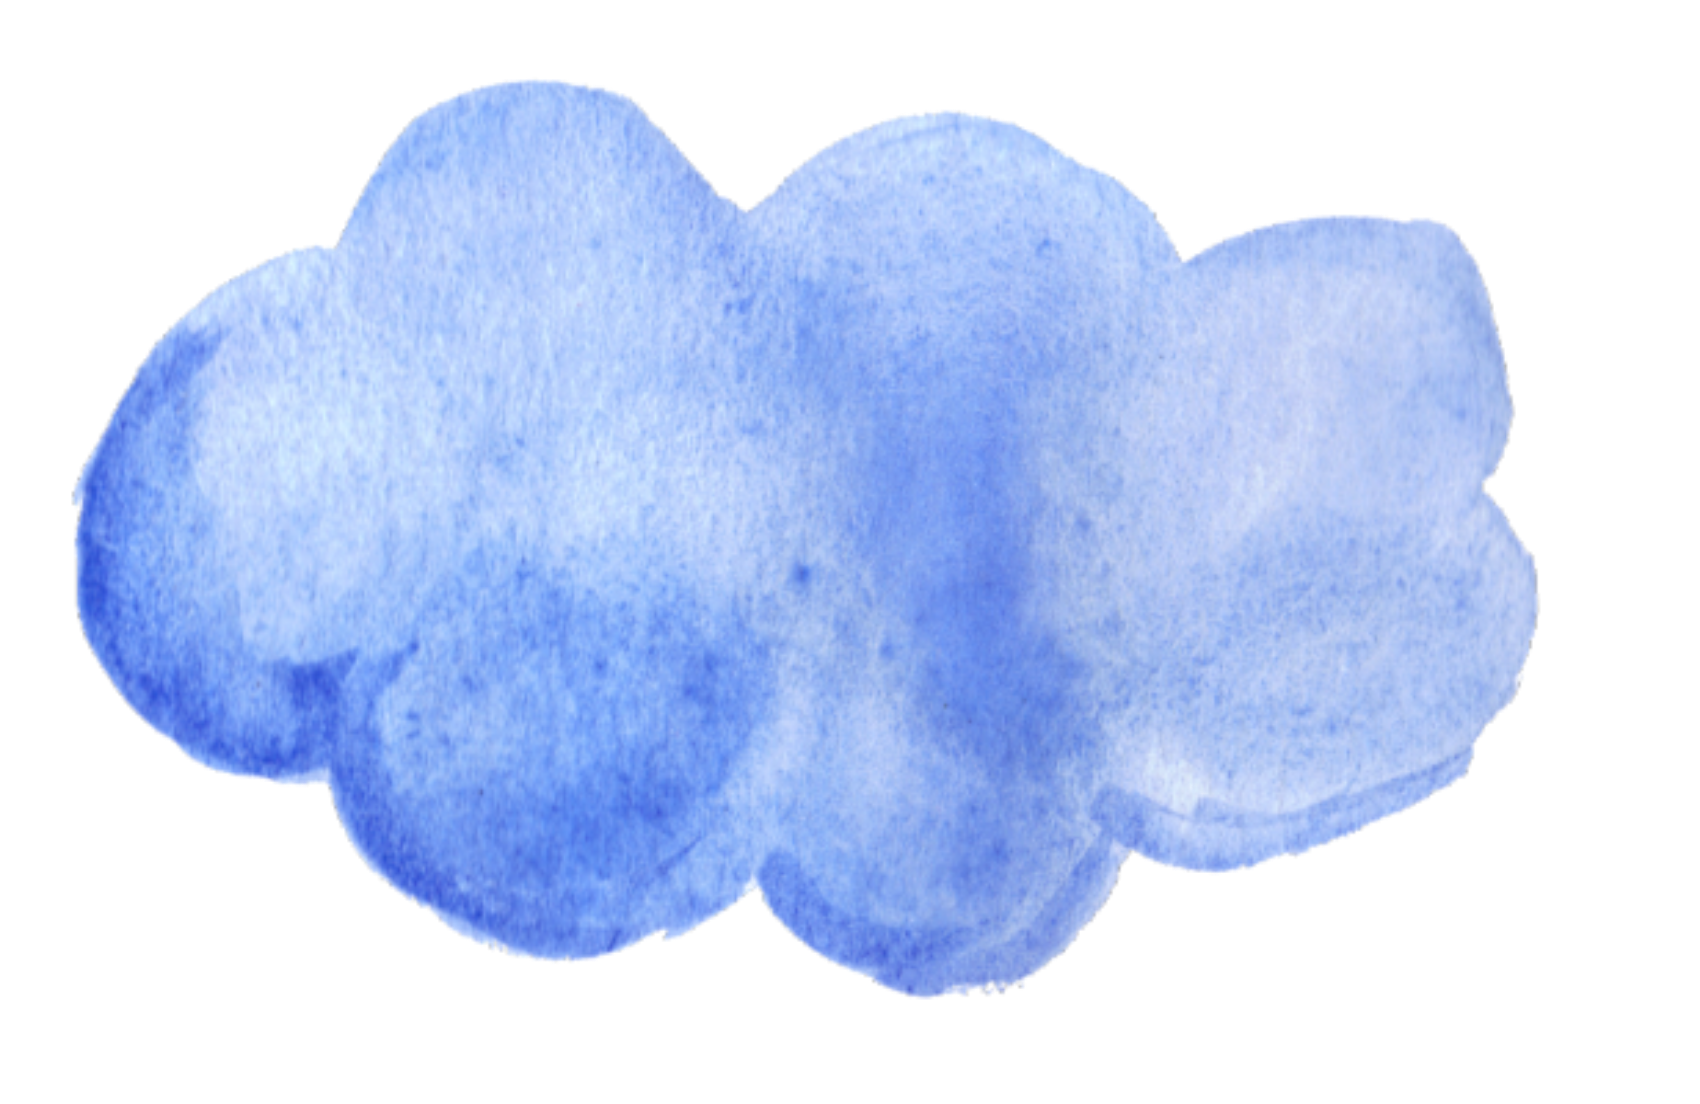 Cloud clipart watercolor. Discover the coolest ftestickers